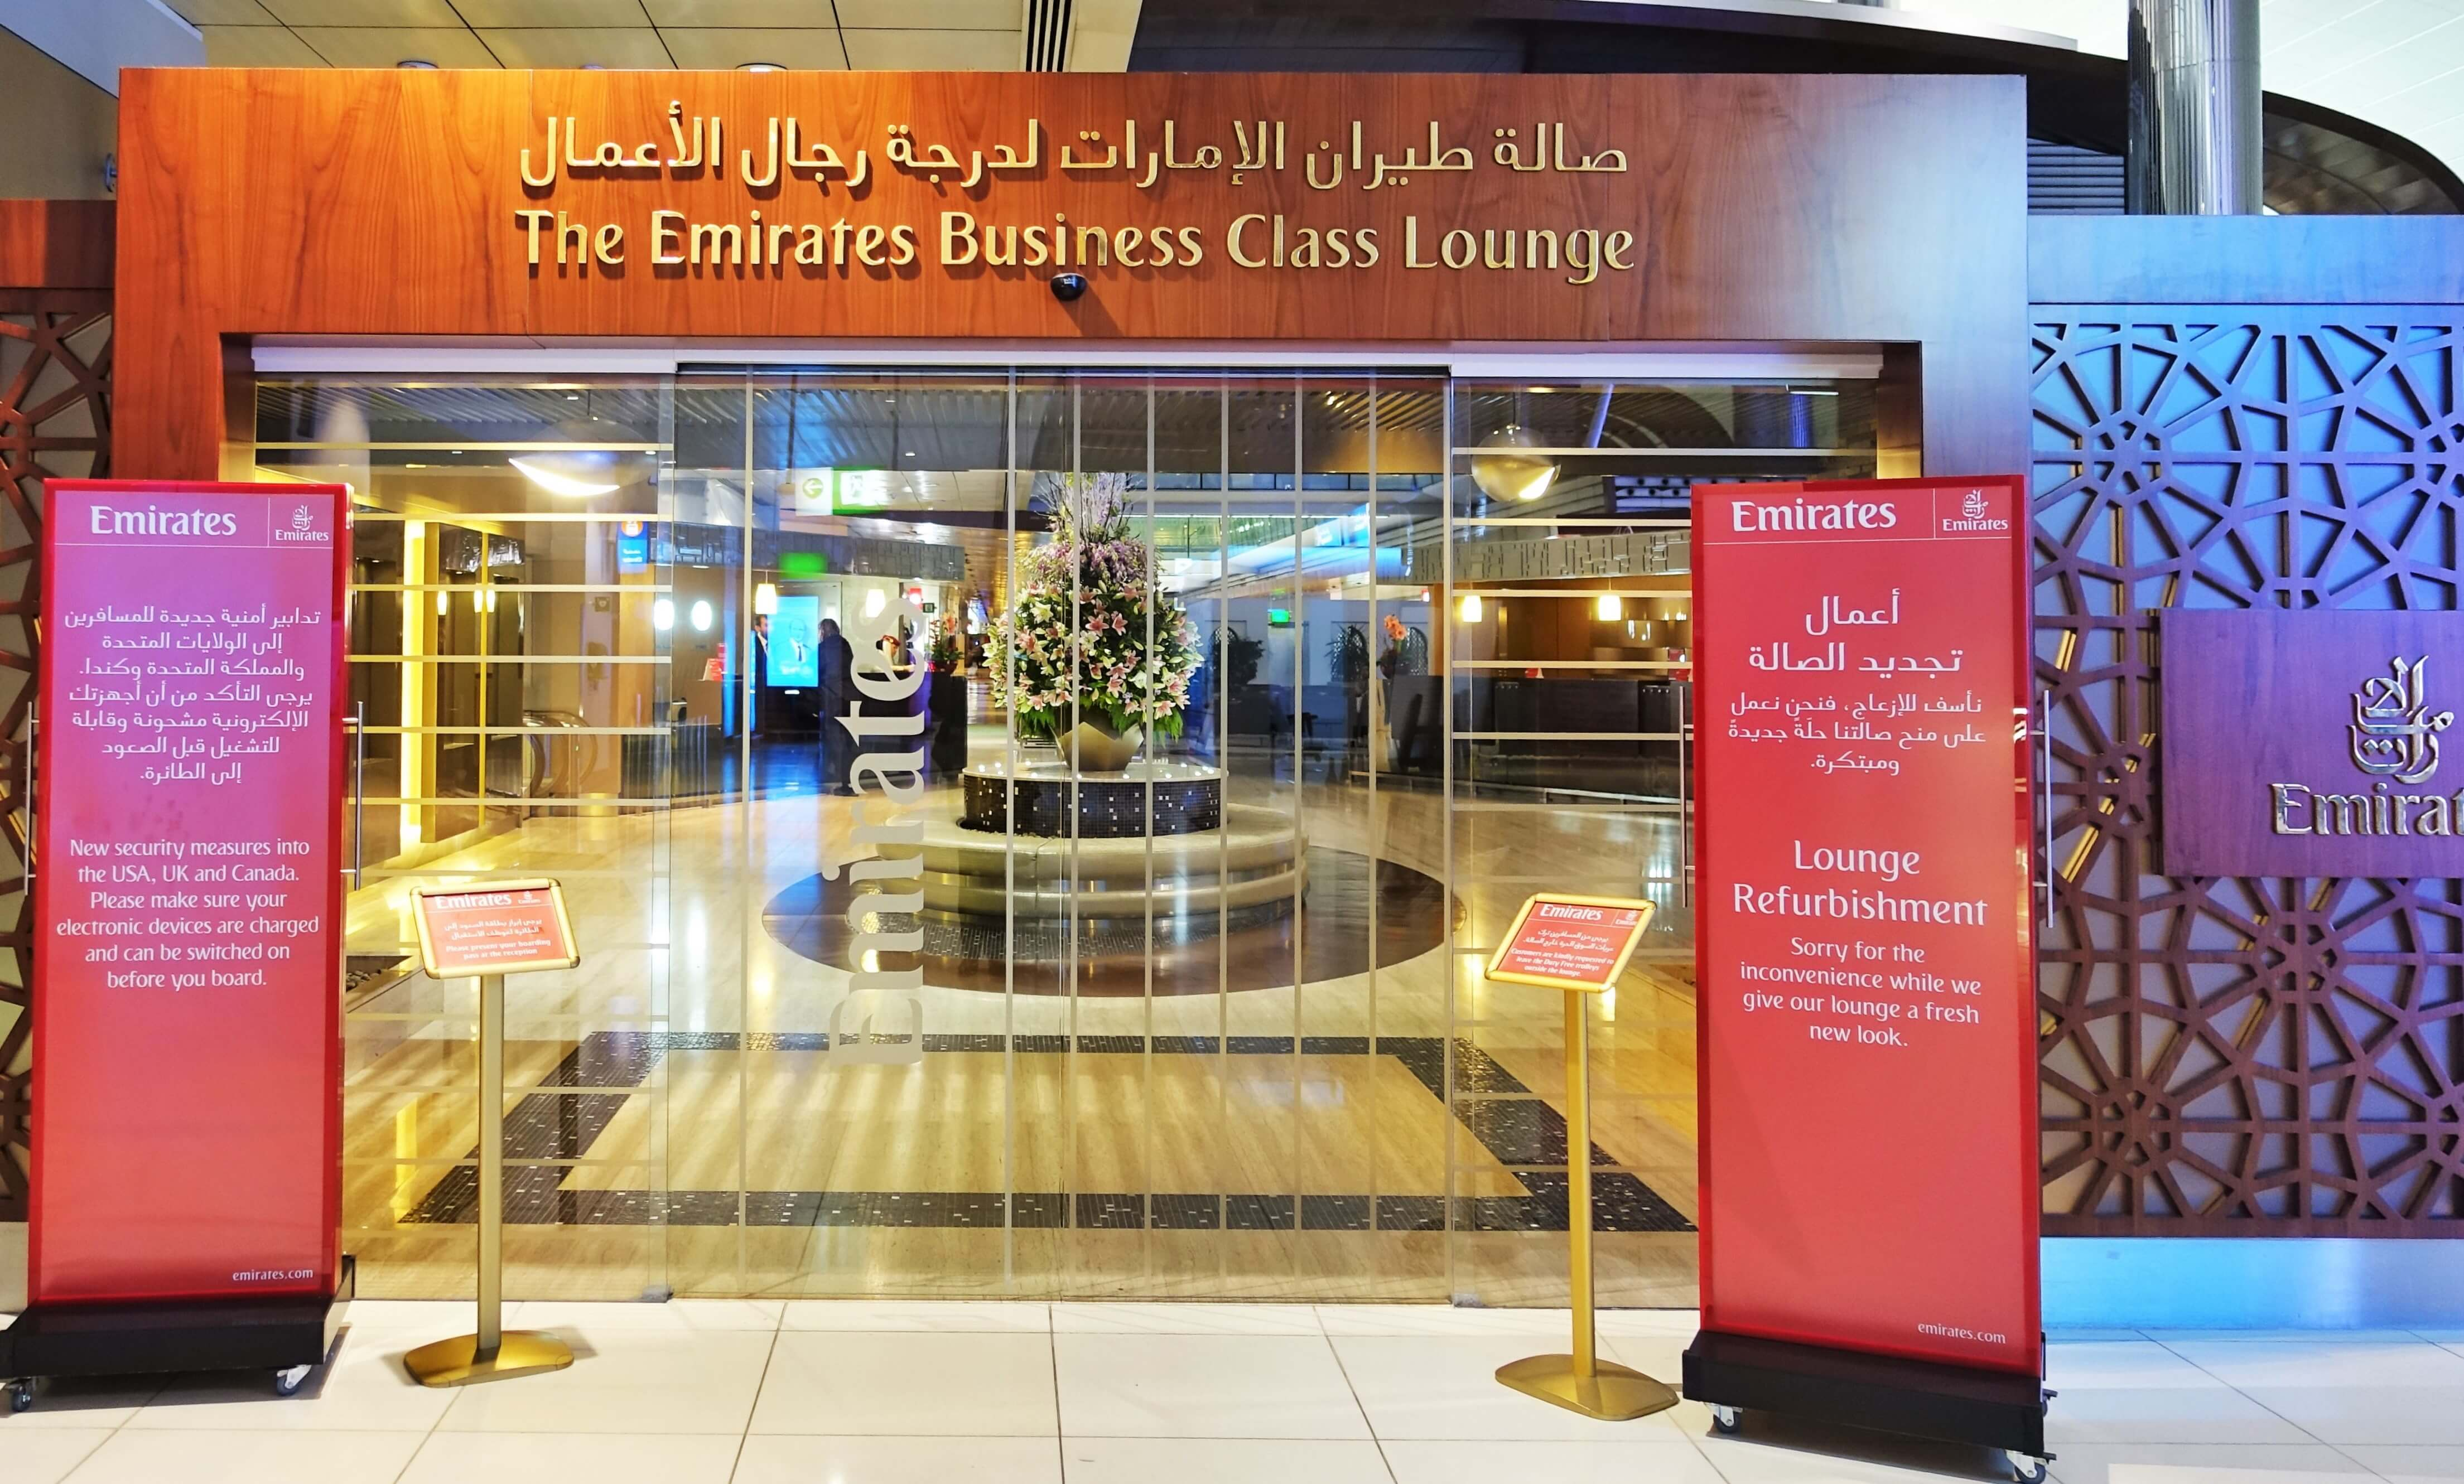 Emirates A380 Business Class review - frugal first class ...